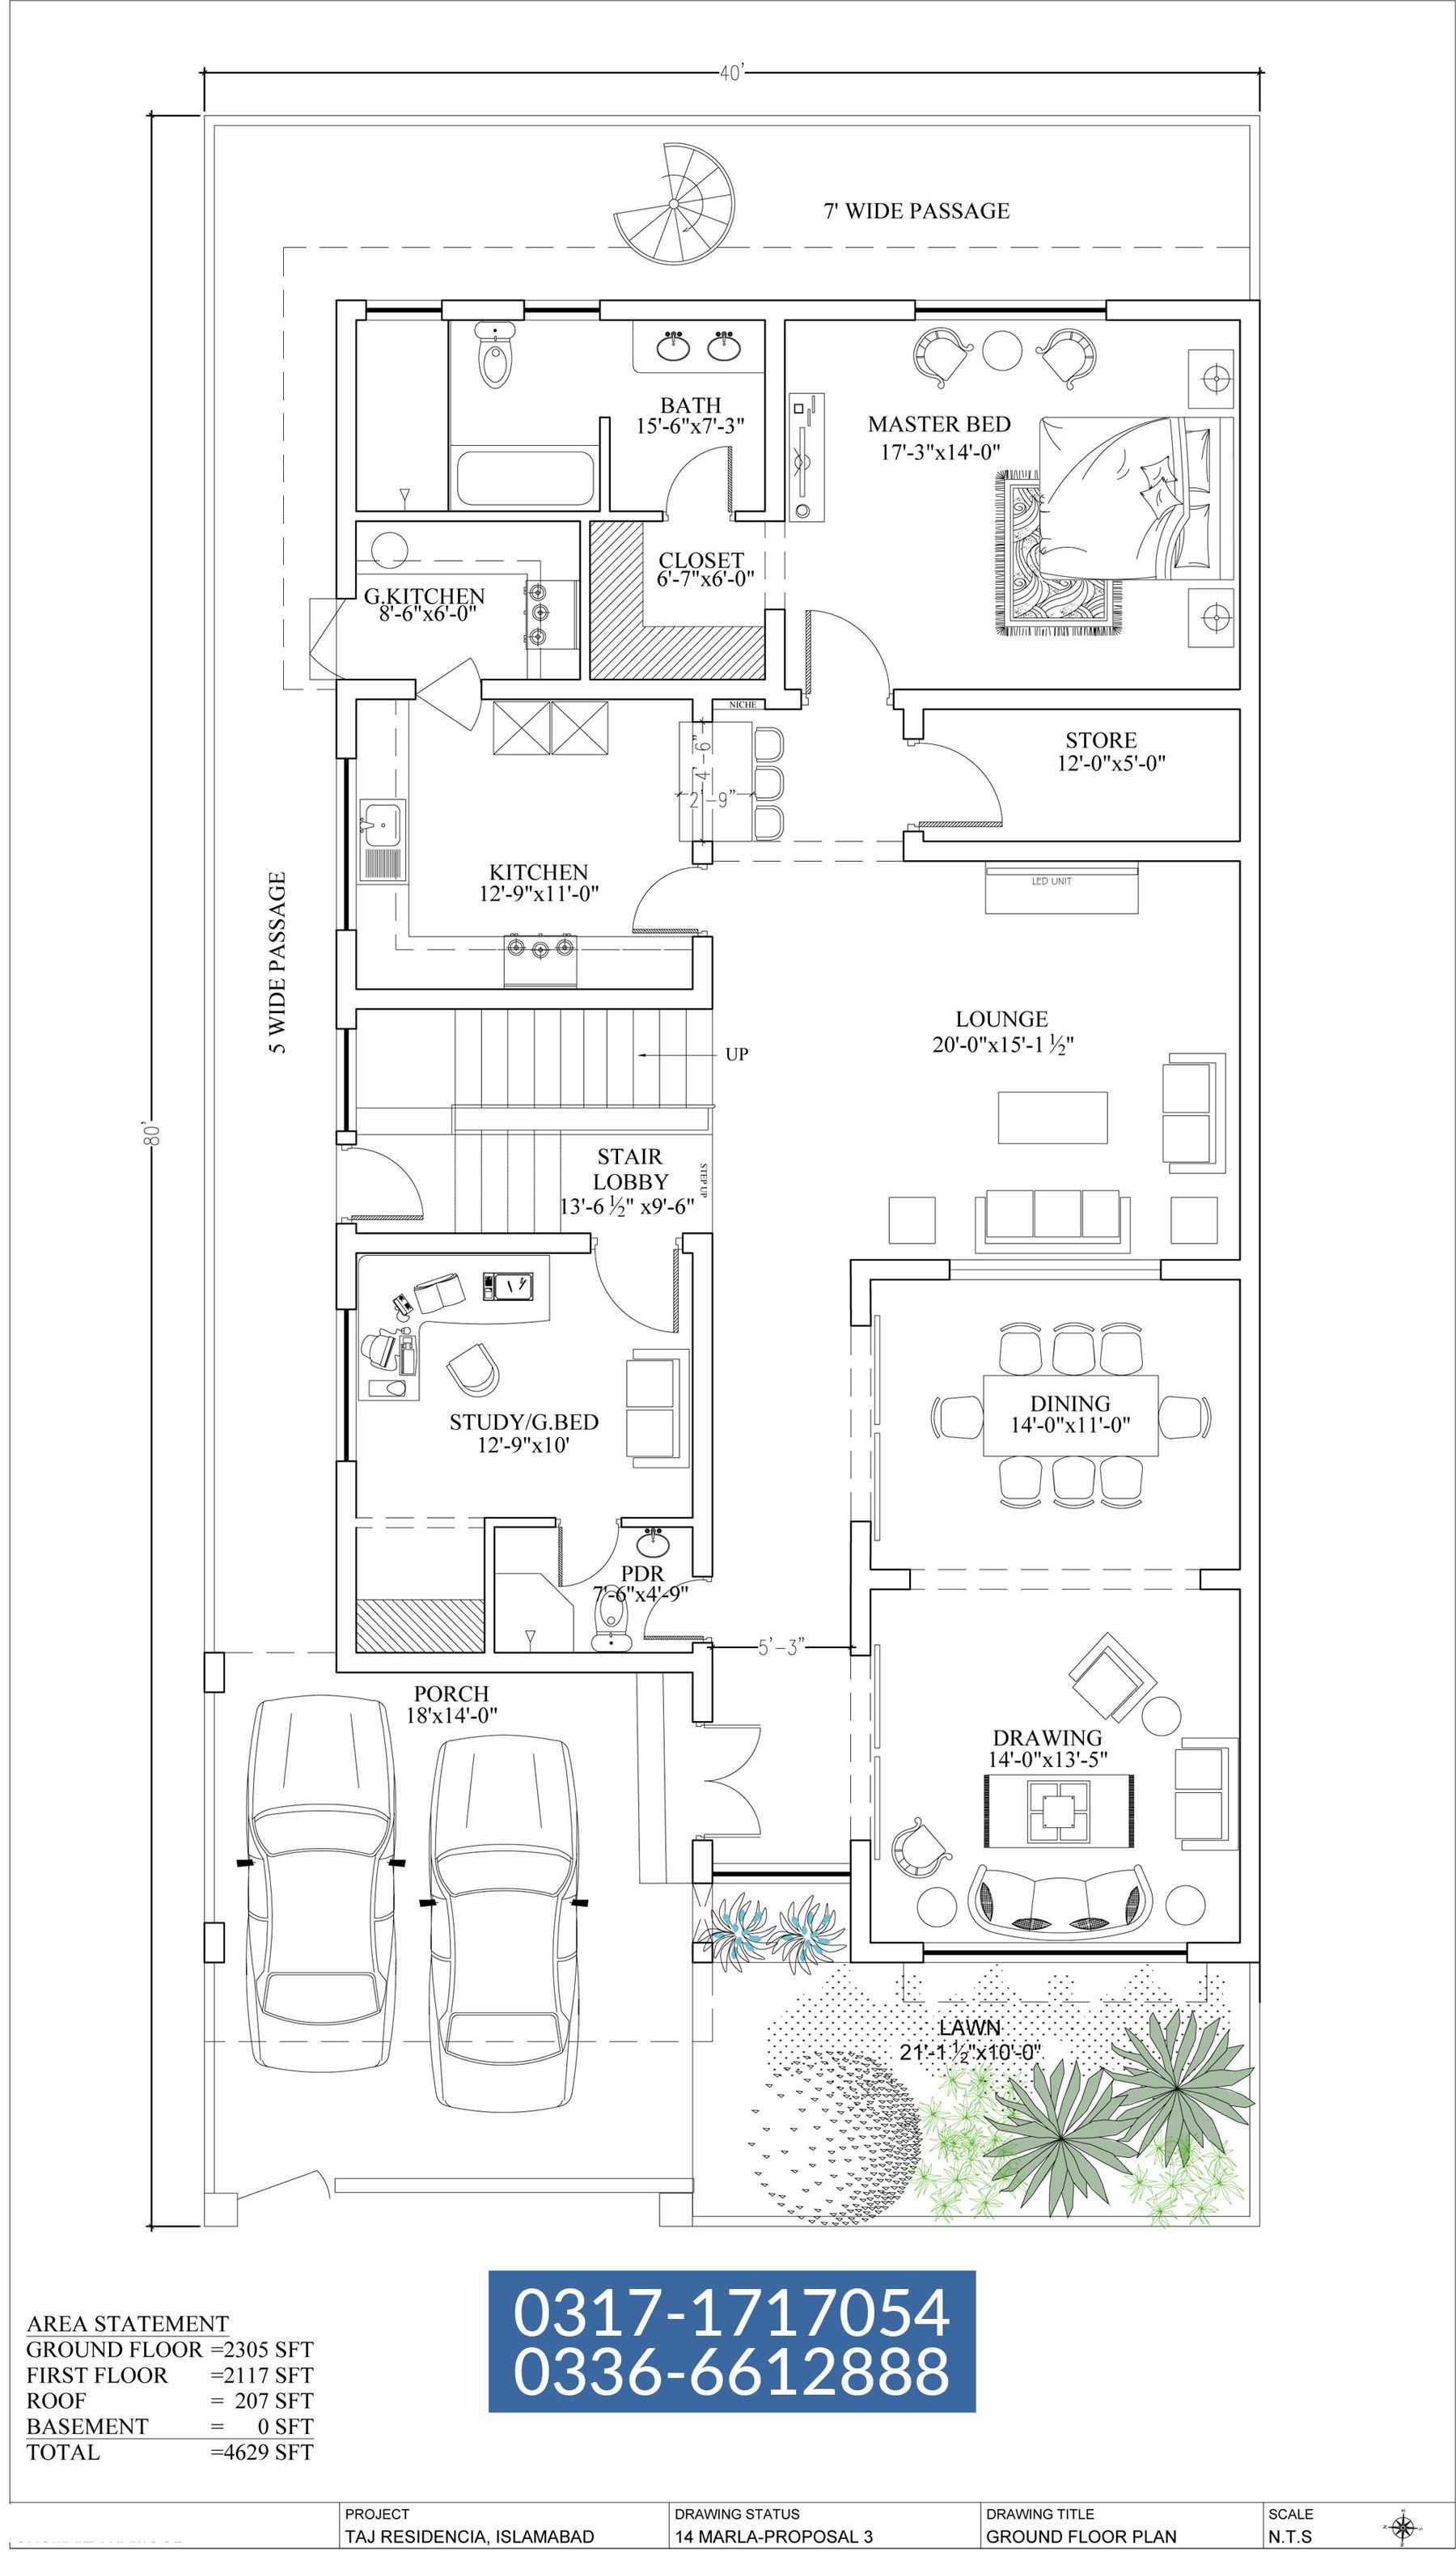 Concrete Slab Floor Design House Plans Medemco Block Home Find Country Style House Plans Ranch Style House Plans Floor Plan Design